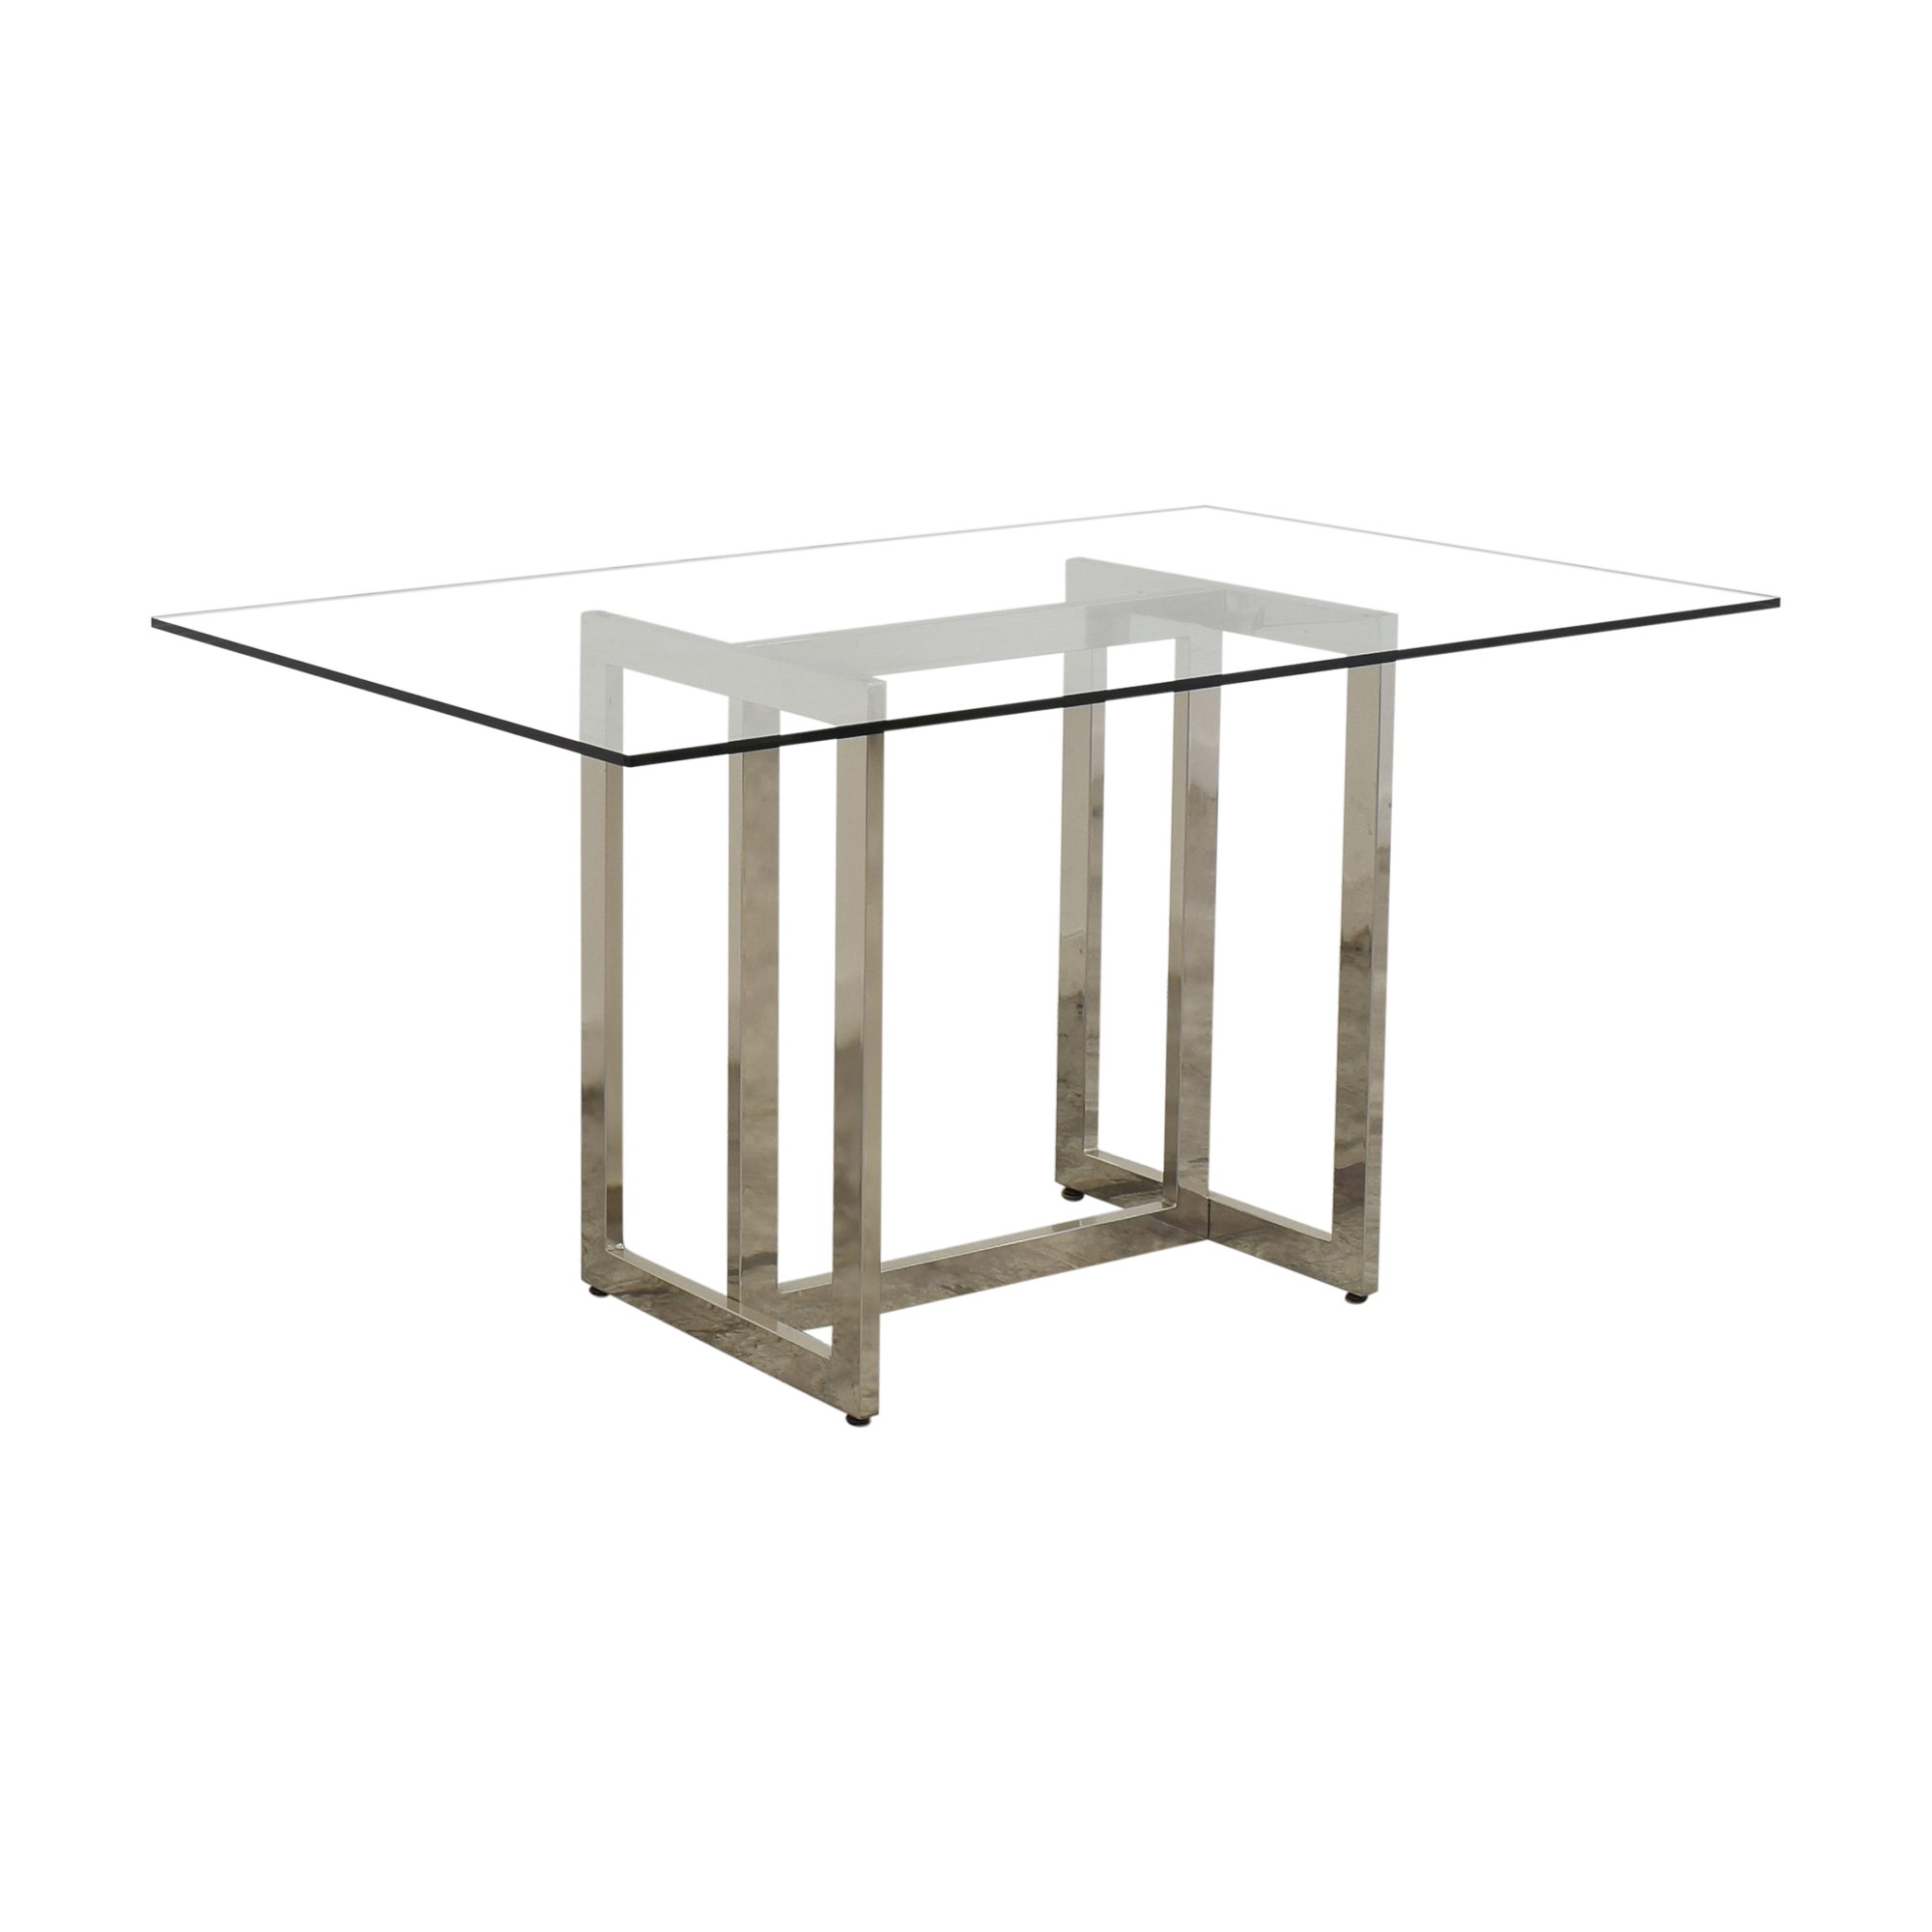 West Elm Rectangular Glass and Chrome Dining Table / Tables